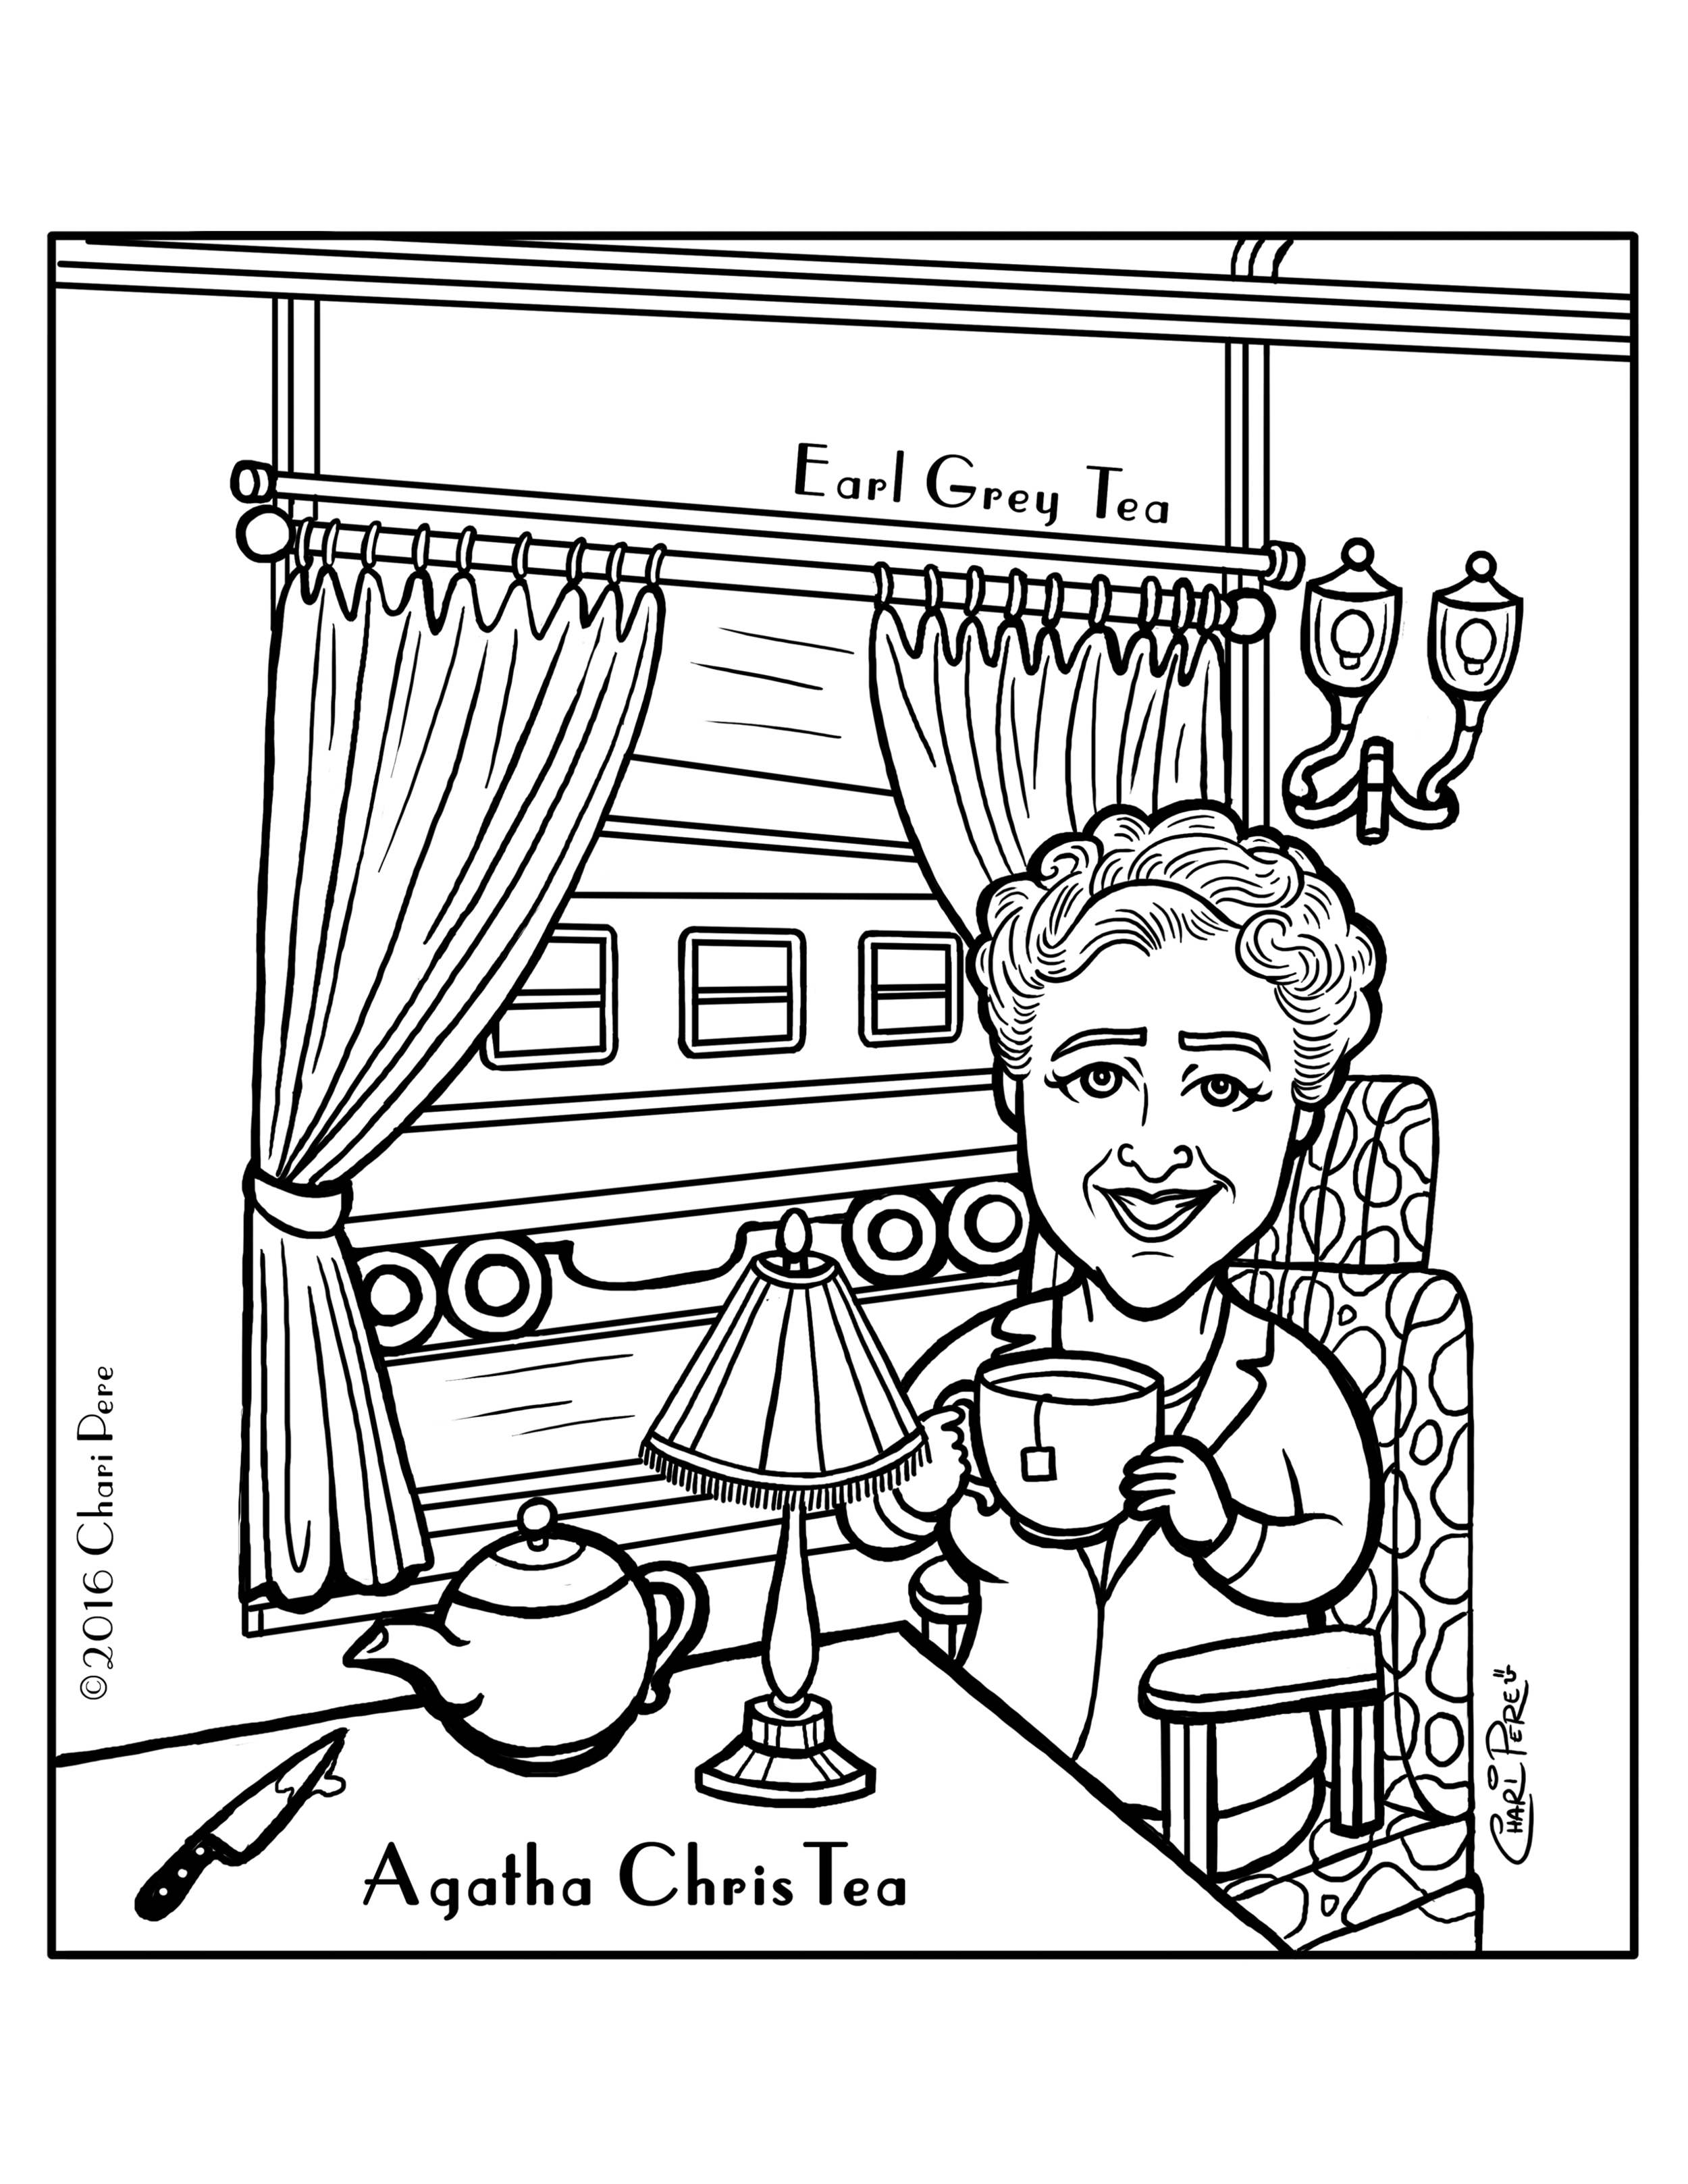 Agatha ChrisTea Coloring Page for The TeaBook